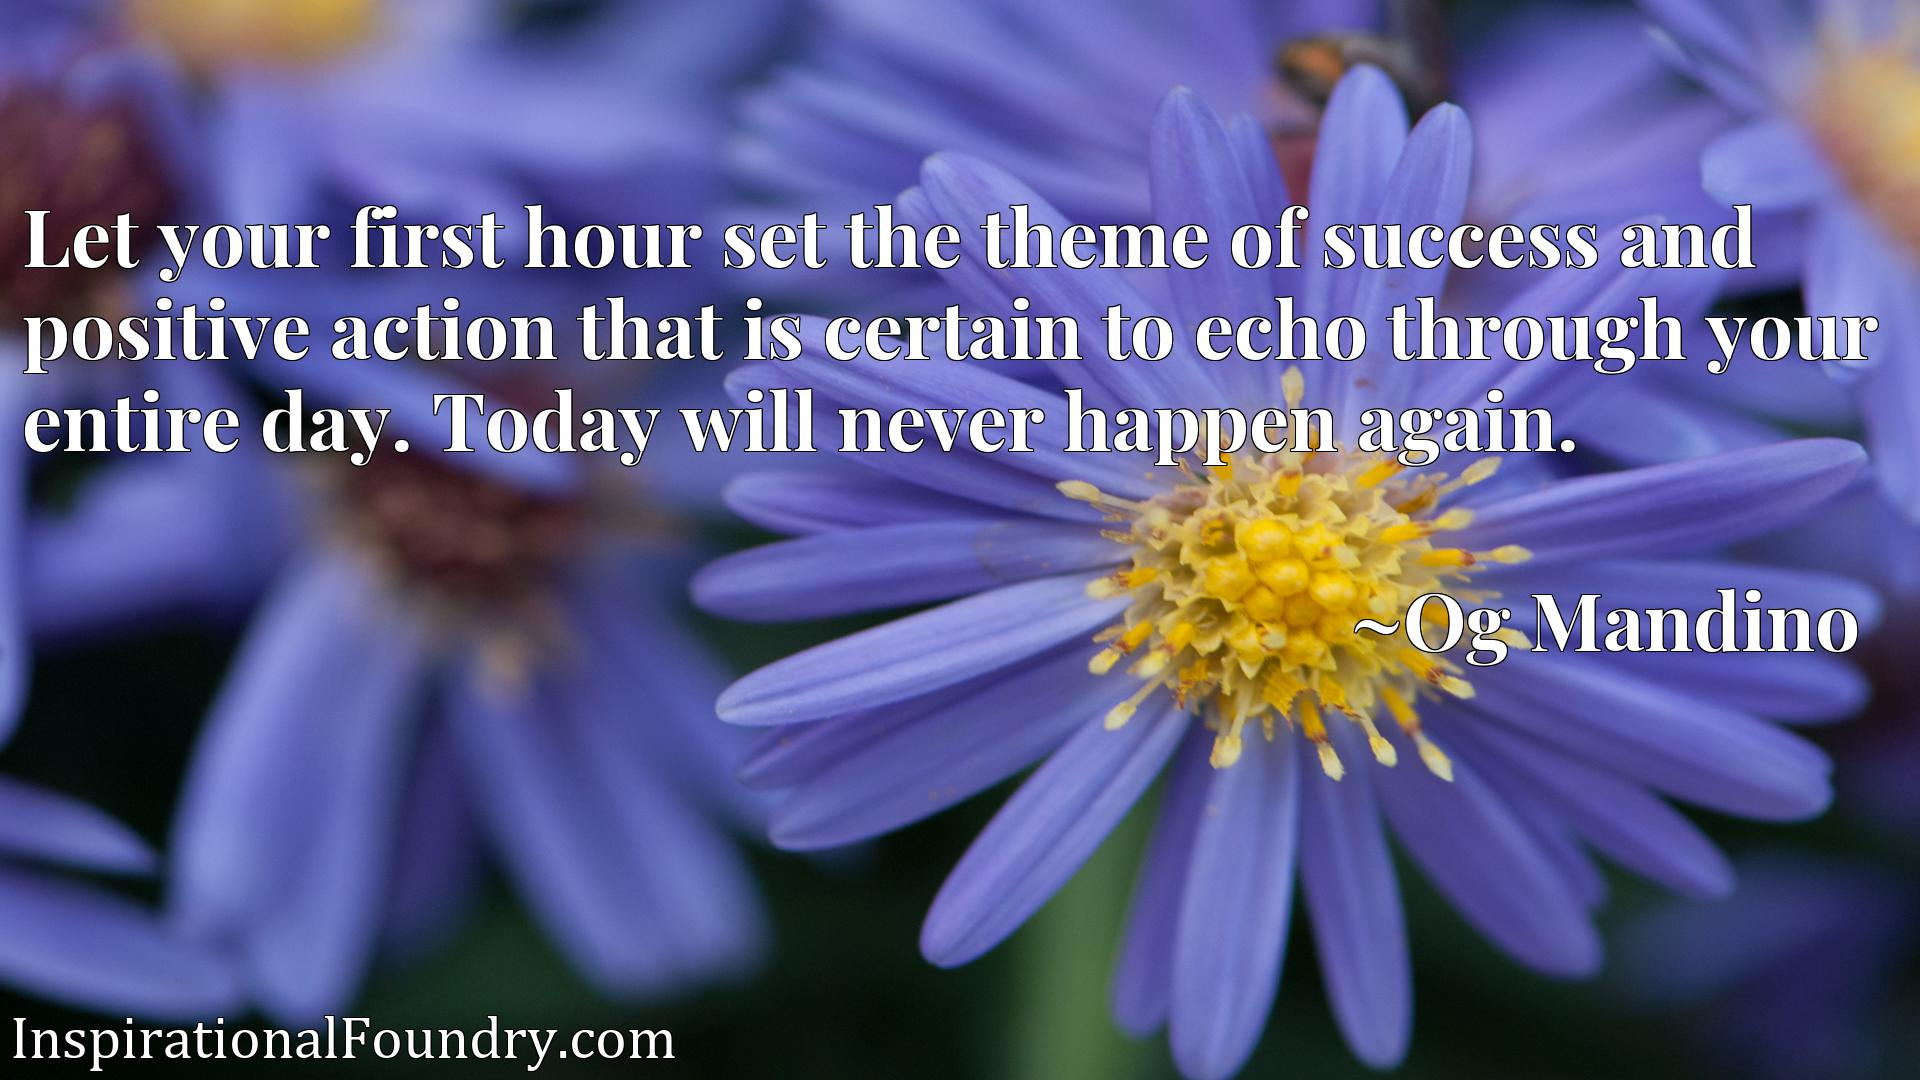 Let your first hour set the theme of success and positive action that is certain to echo through your entire day. Today will never happen again.